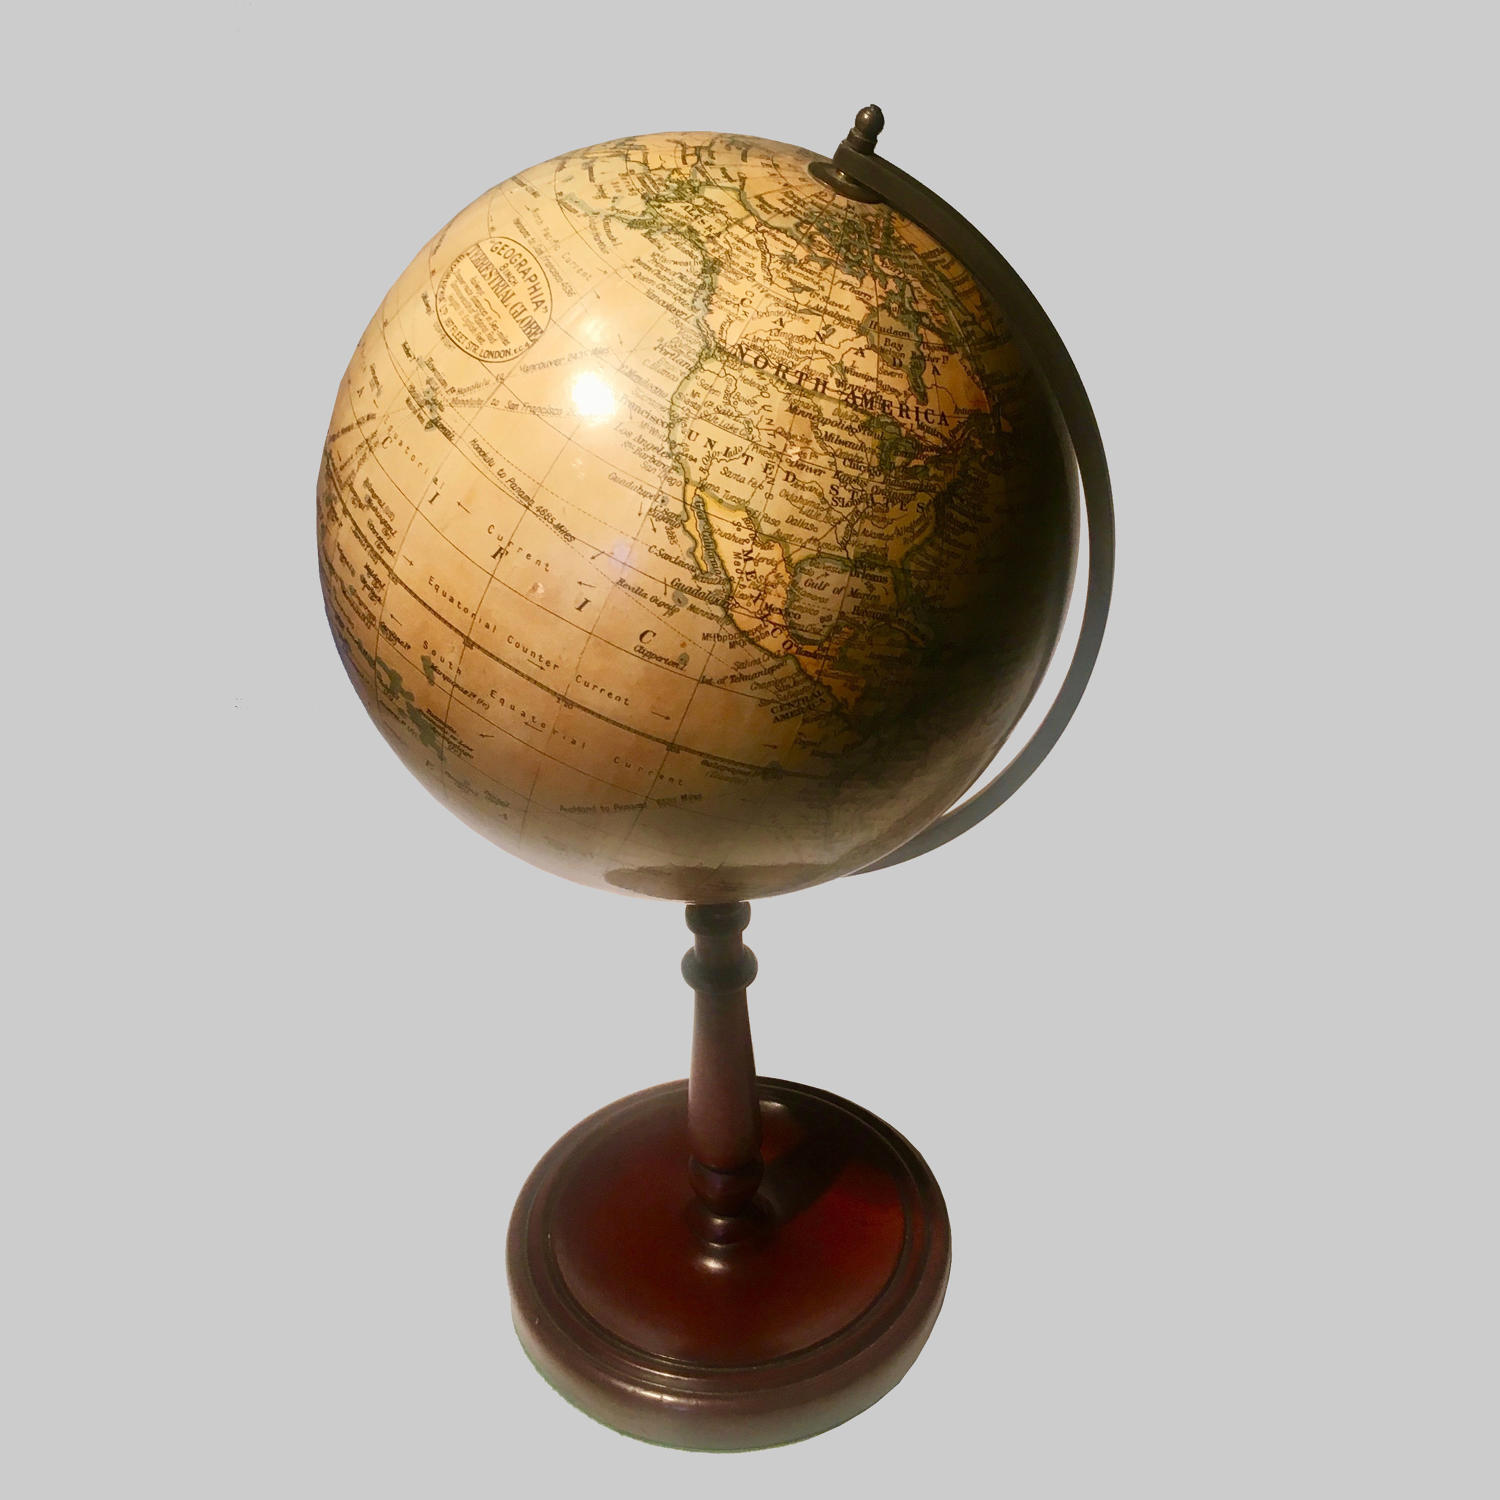 Terrestial globe on mahogany stand by Geographia Ltd.